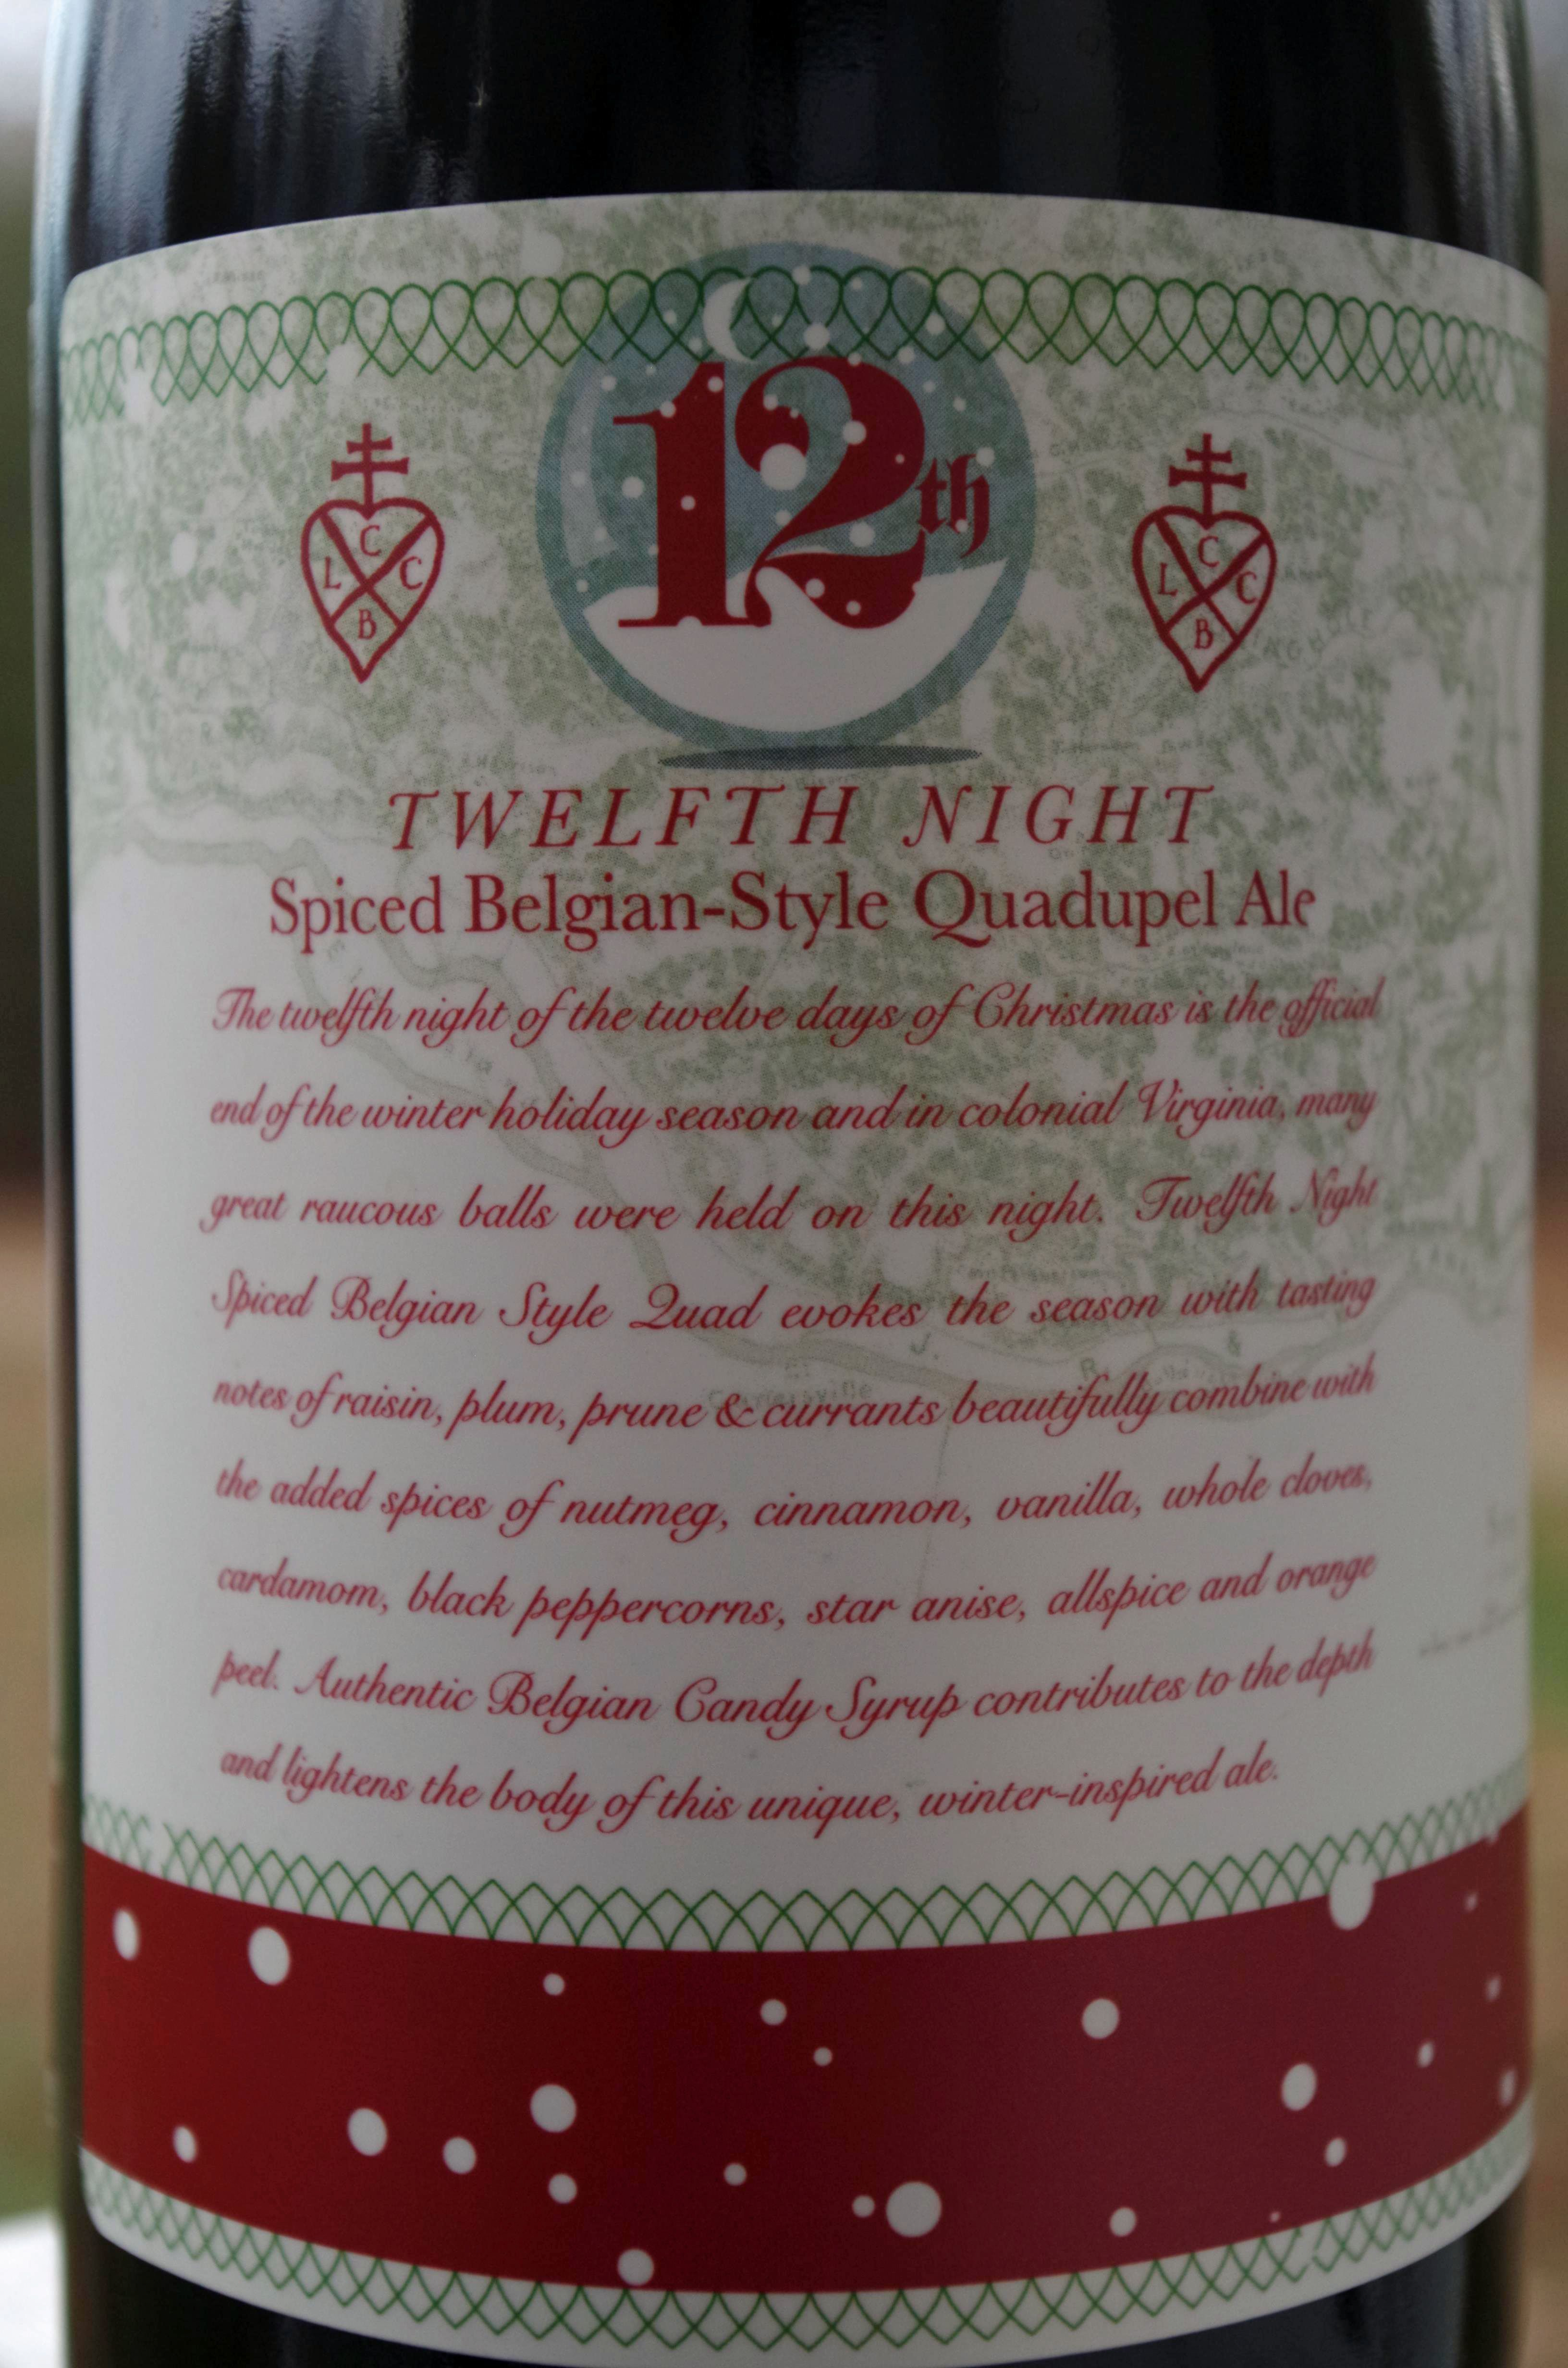 12th Night Spiced Belgian-Style Quad 9.5% ABV, 29 IBU Spices Used: Orange Peel, Vanilla, Ginger, Cinnamon, Allspice, Whole Clove, Star Anise, Nutmeg & Black Peppercorn Lickinghole Creek Craft Brewery Goochland County, VA